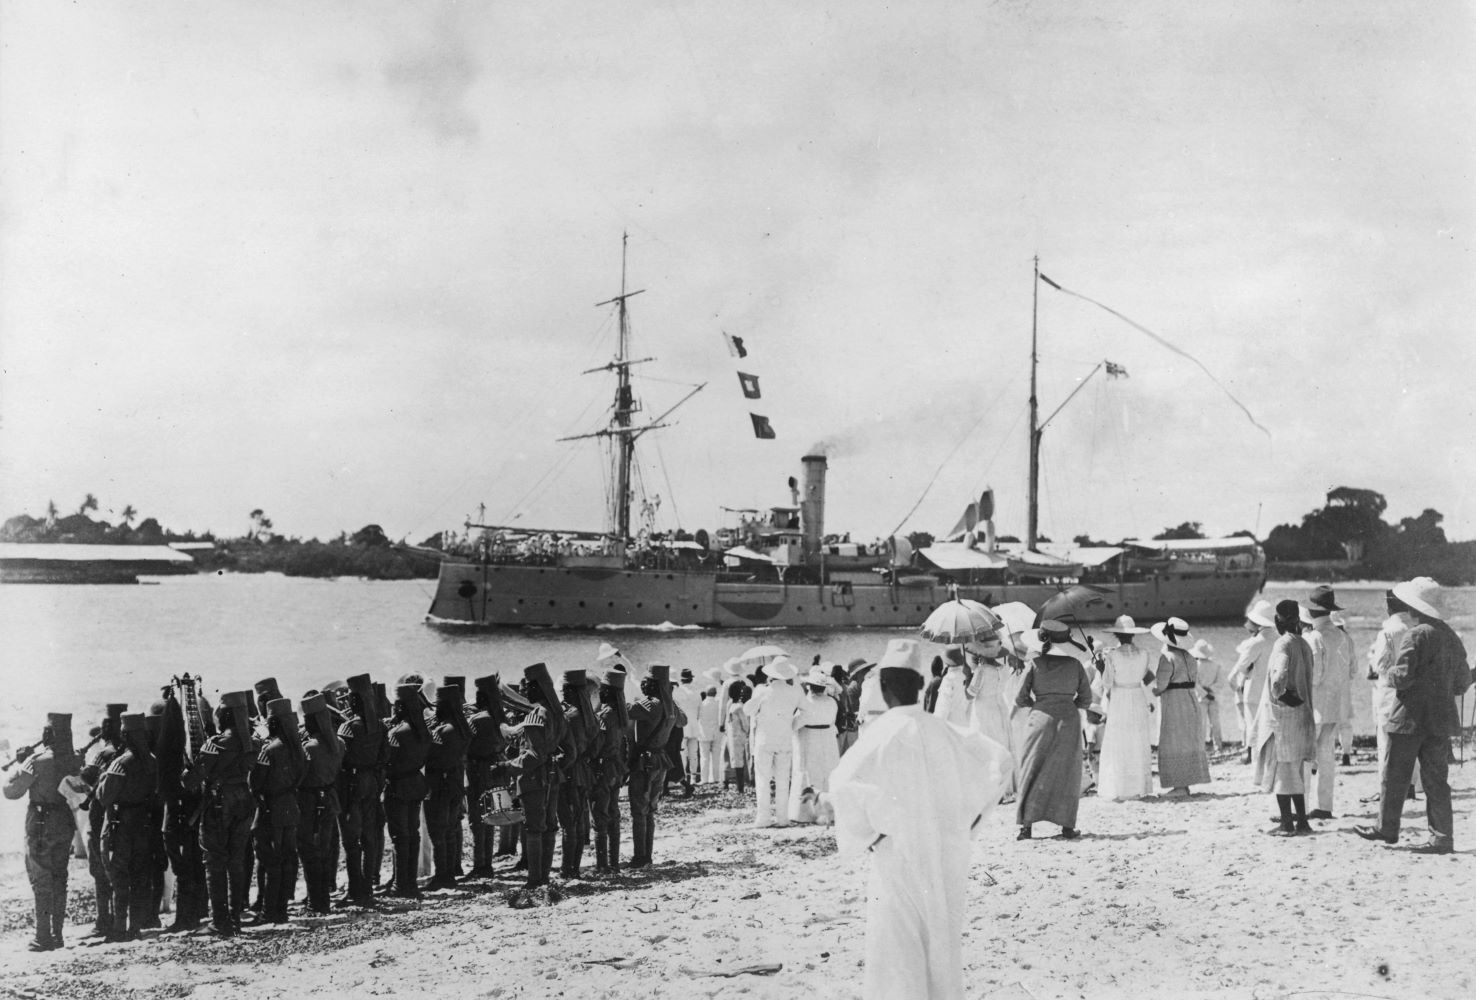 S.M.S. sea eagle on its way home leaves the port of Dar es Salaam / Photo Deutsch-Ostafrika (today Tanzania) 1914.